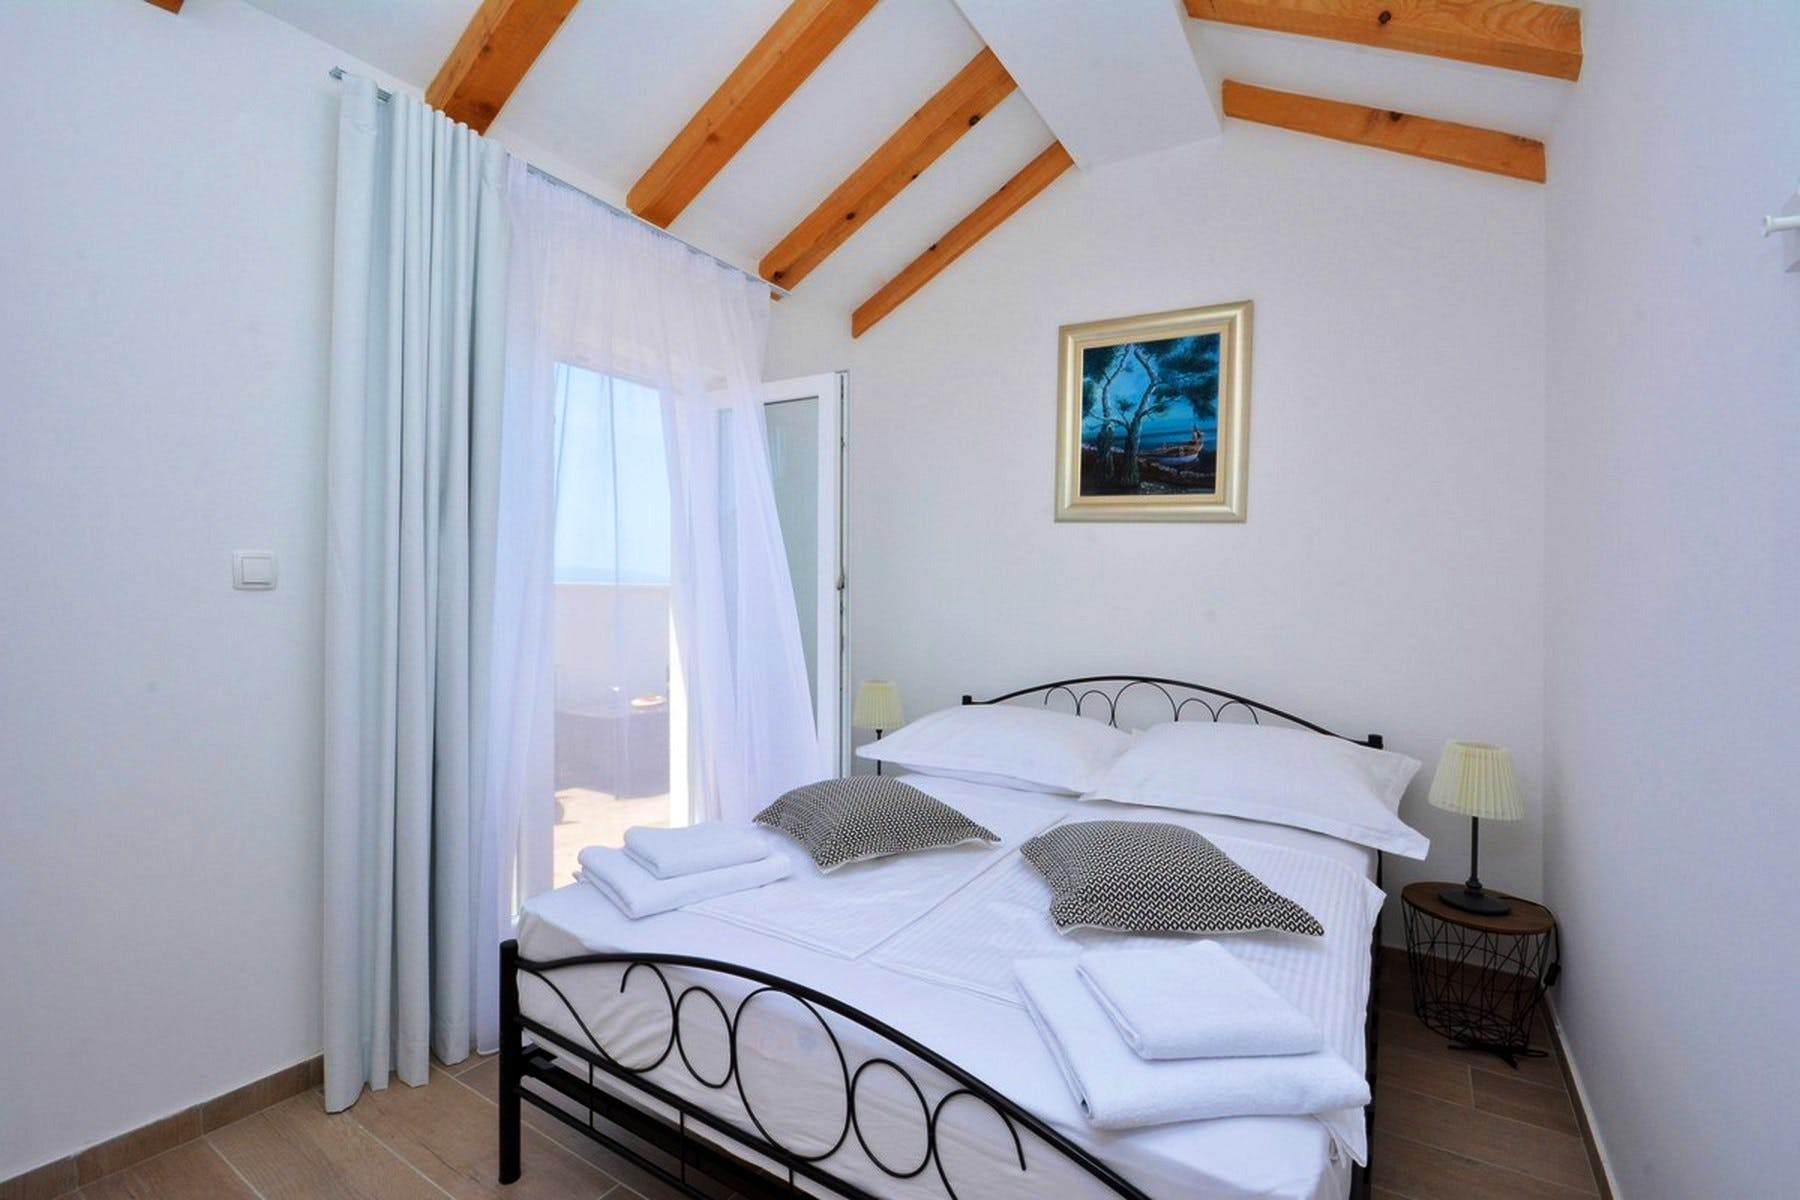 Double bedroom decorated with beams